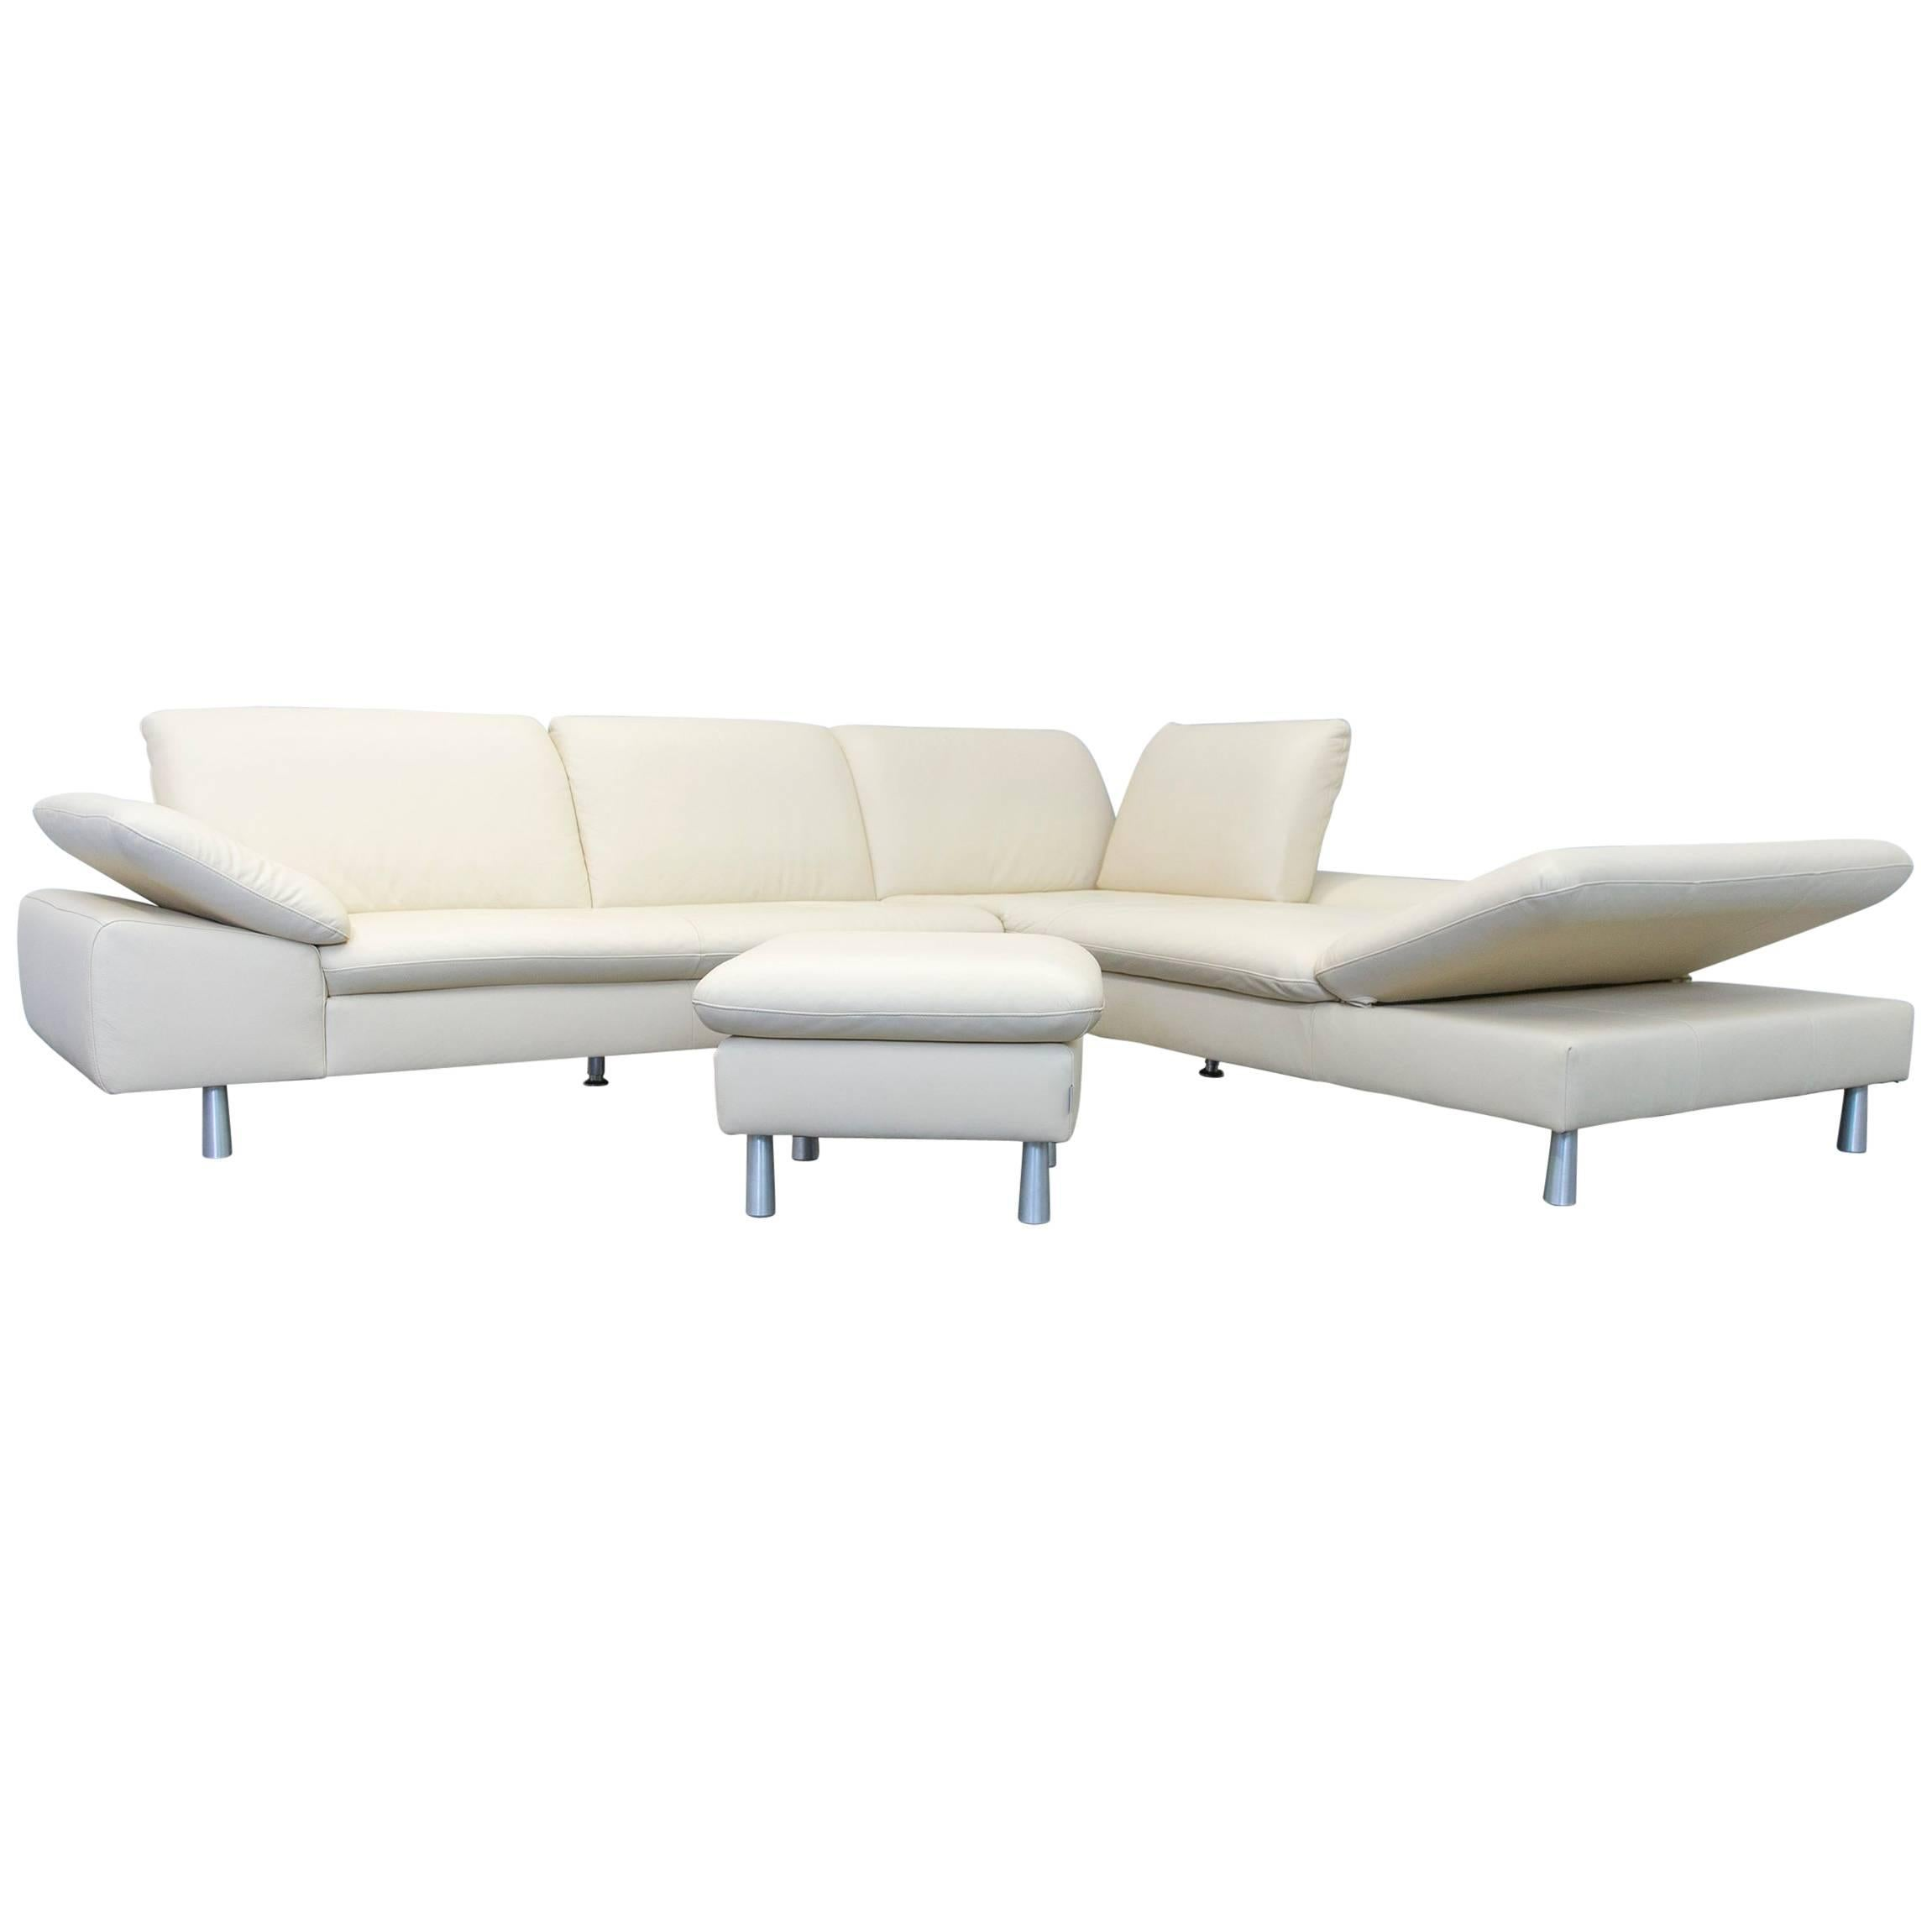 Free Excellent Cool Best Willi Schillig Loop Designer Corner Sofa Set  Leather Beige Function Couch Modern With Wschillig Loop With Kchensple Wei  With Sofa ...